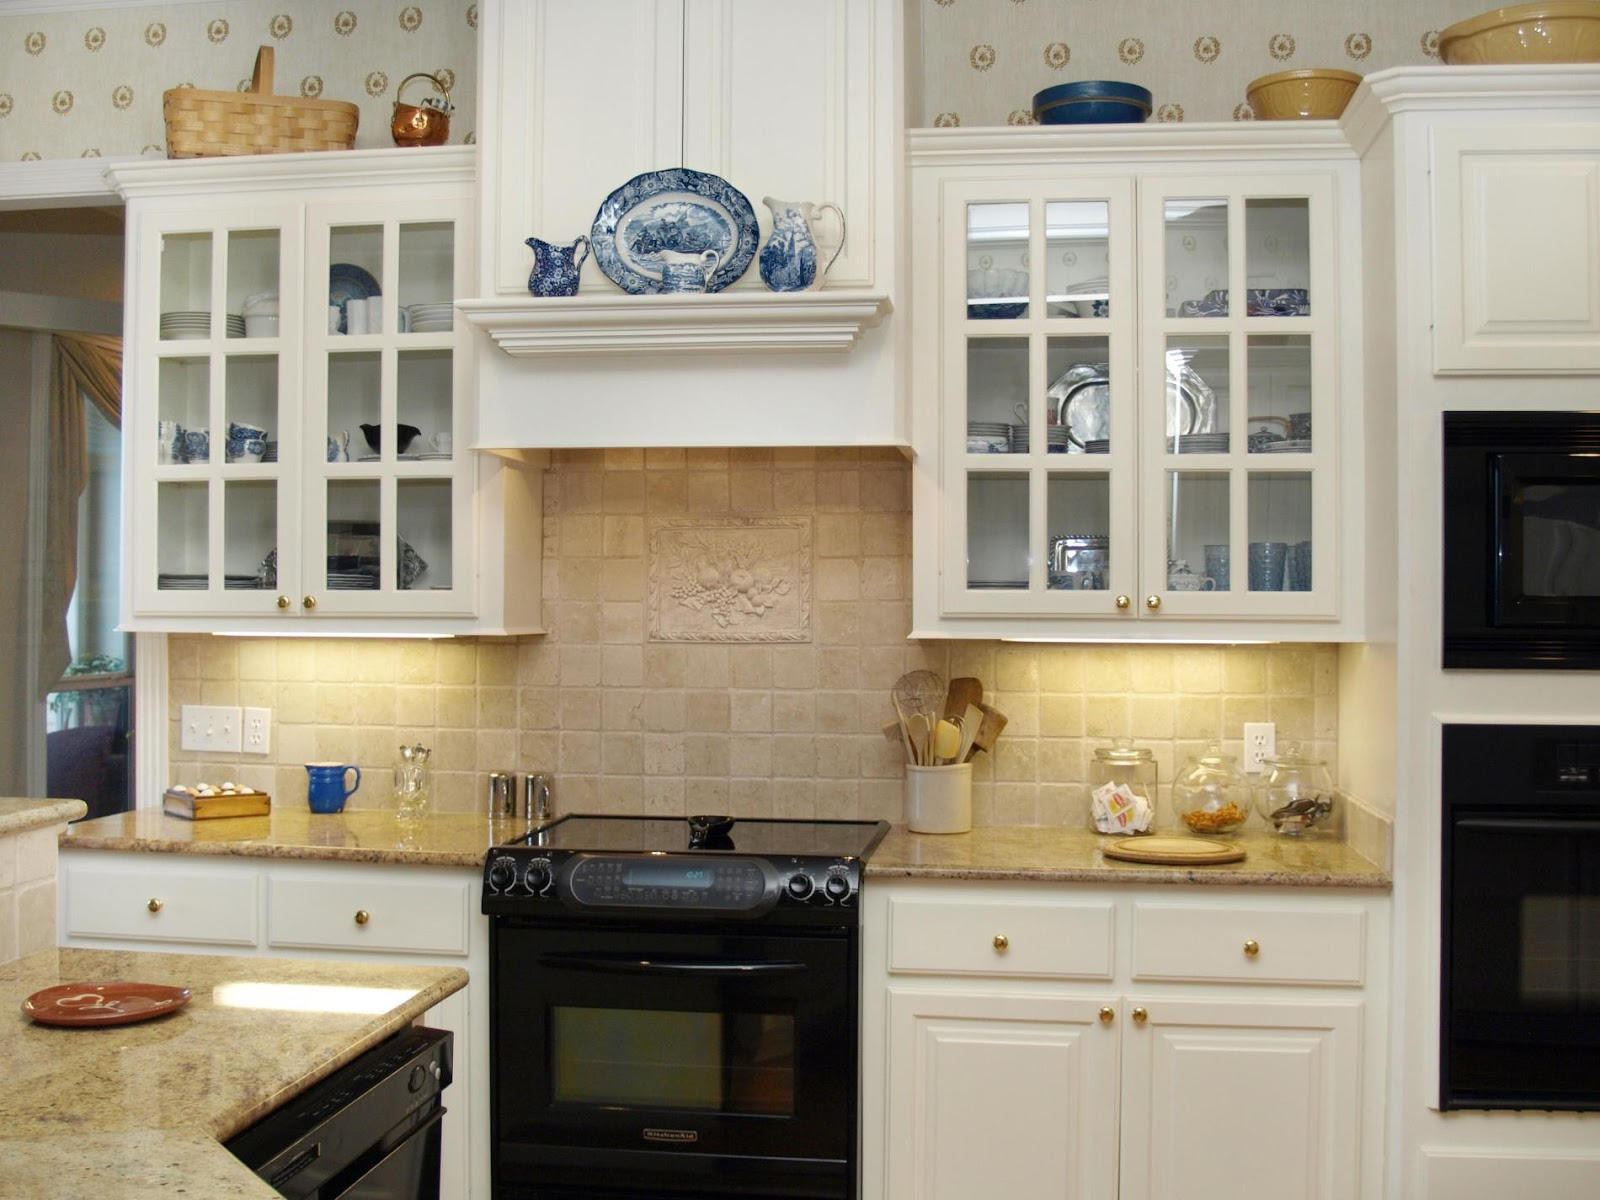 Kitchen shelves decoration dream house experience for Kitchen decoration designs